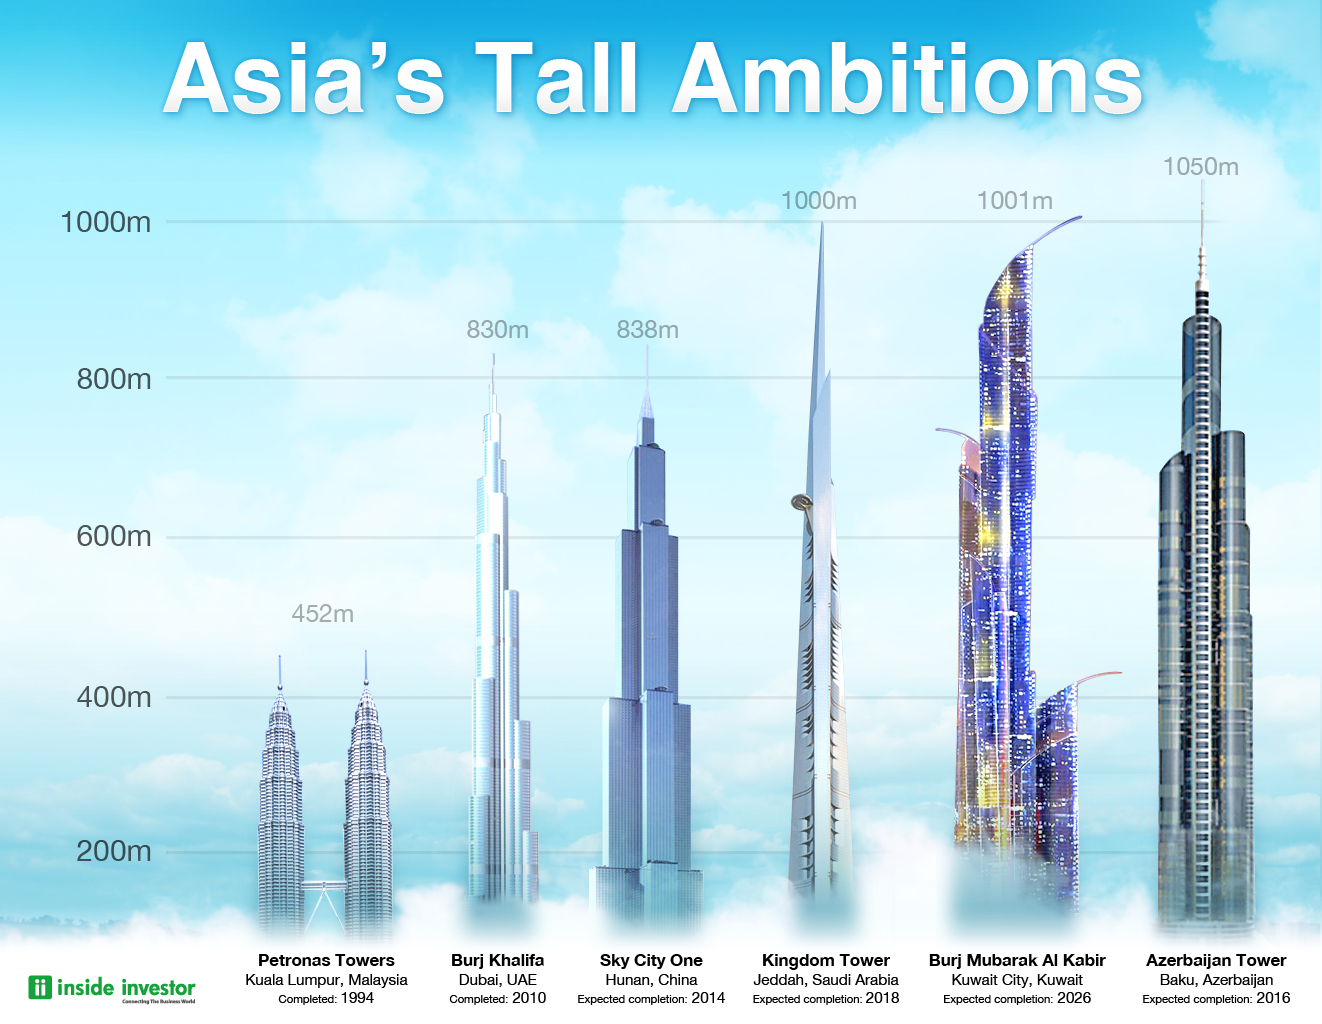 how tall were the twin towers